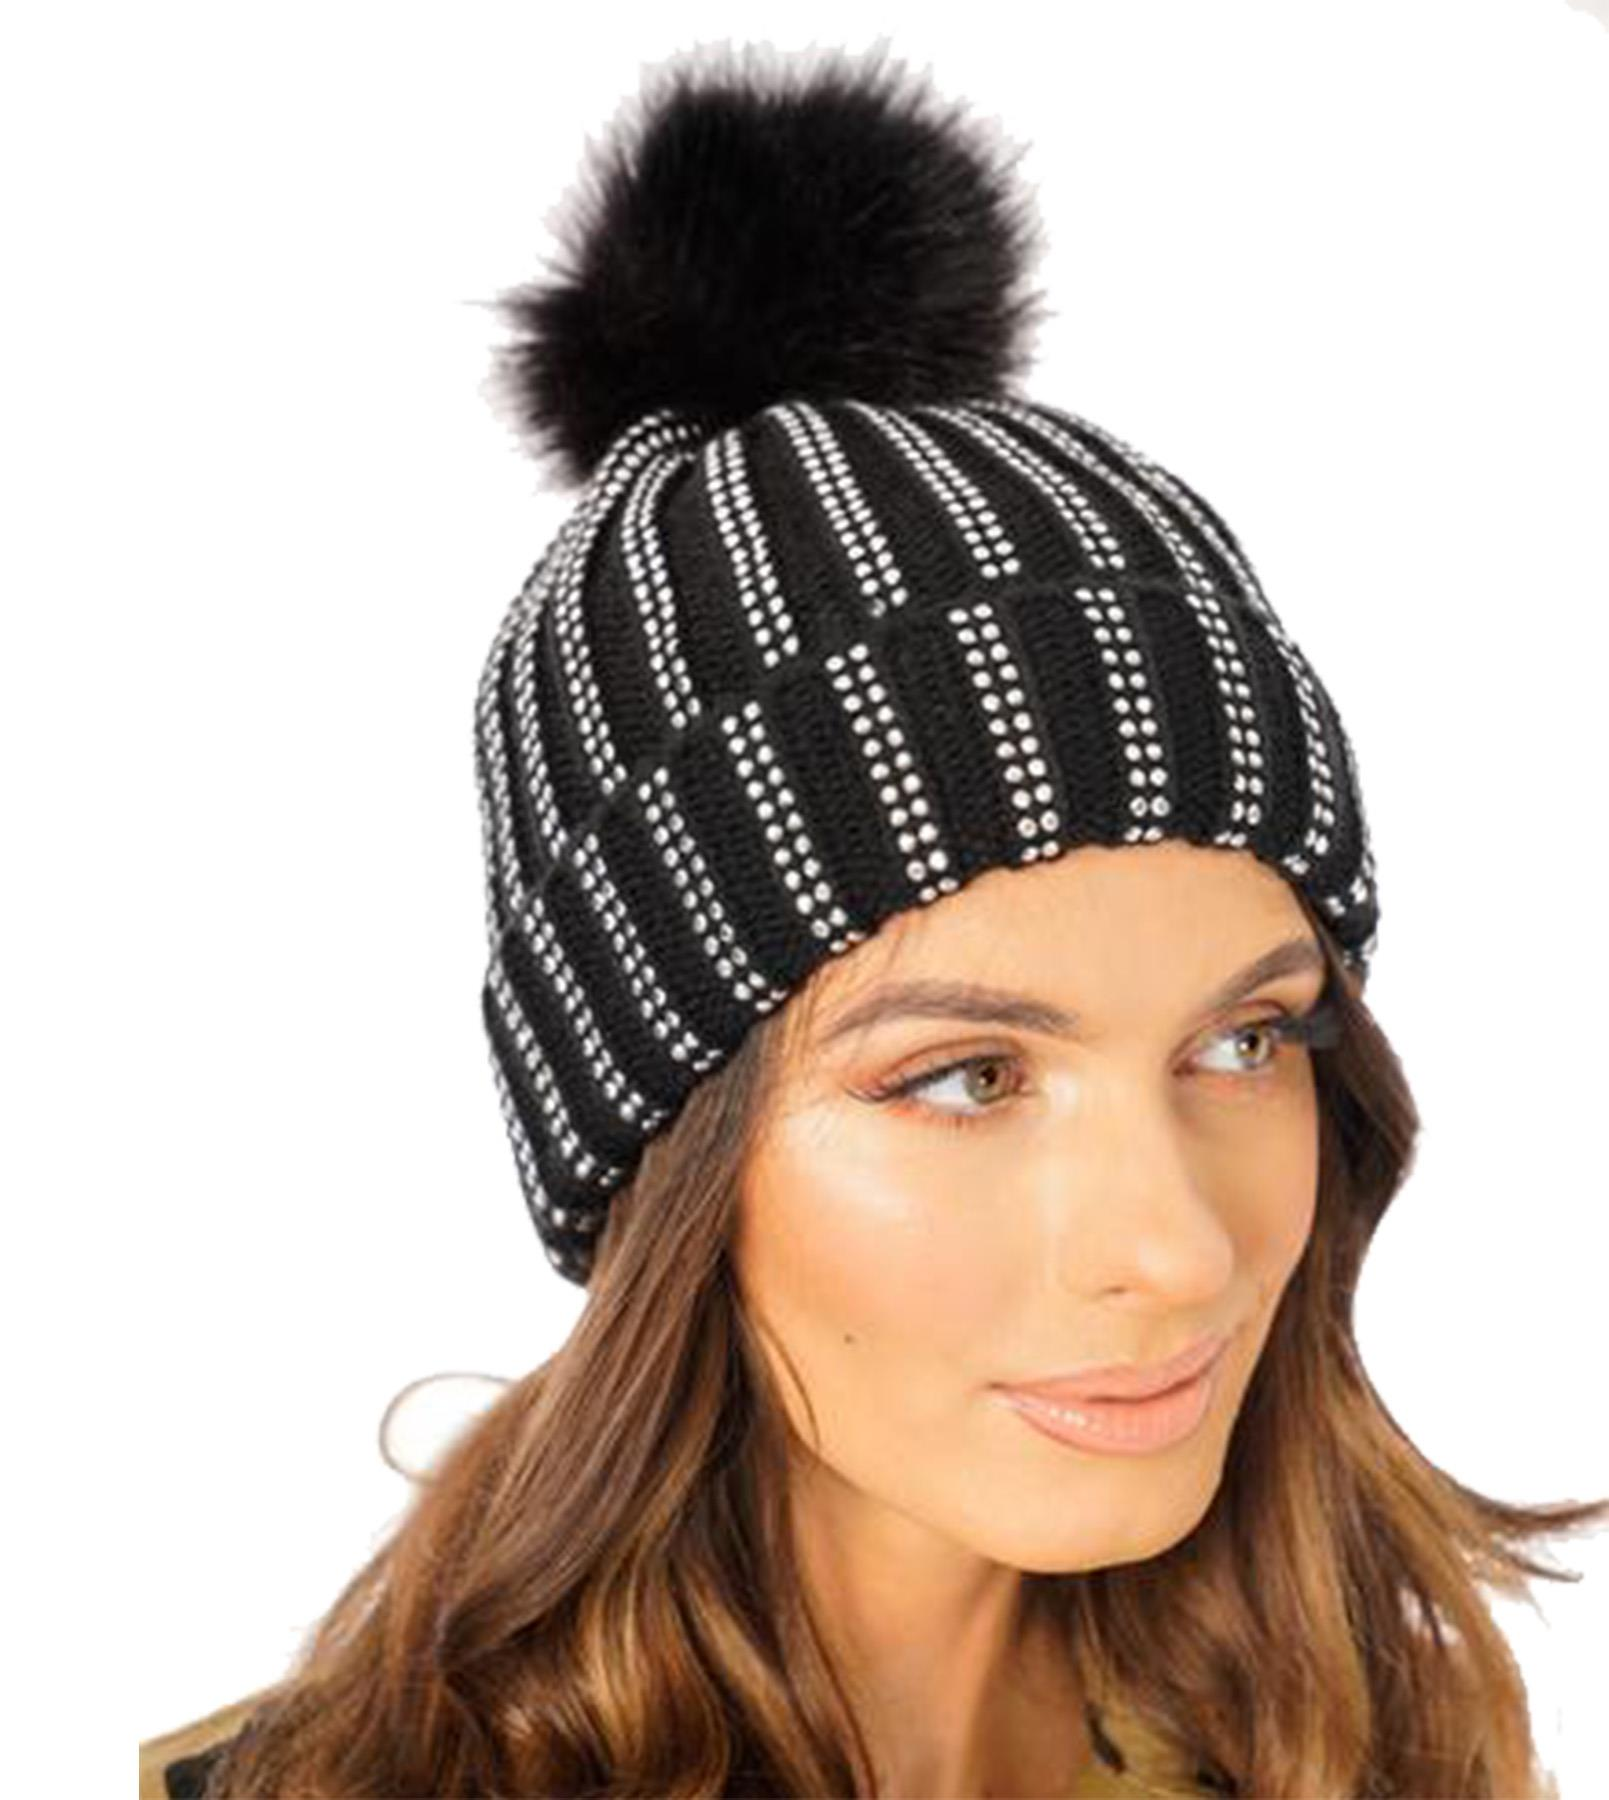 New-Rhinestone-Gem-Embellishment-Synthetic-Fur-Pom-Pom-Women-s-Beanie-Hat thumbnail 5